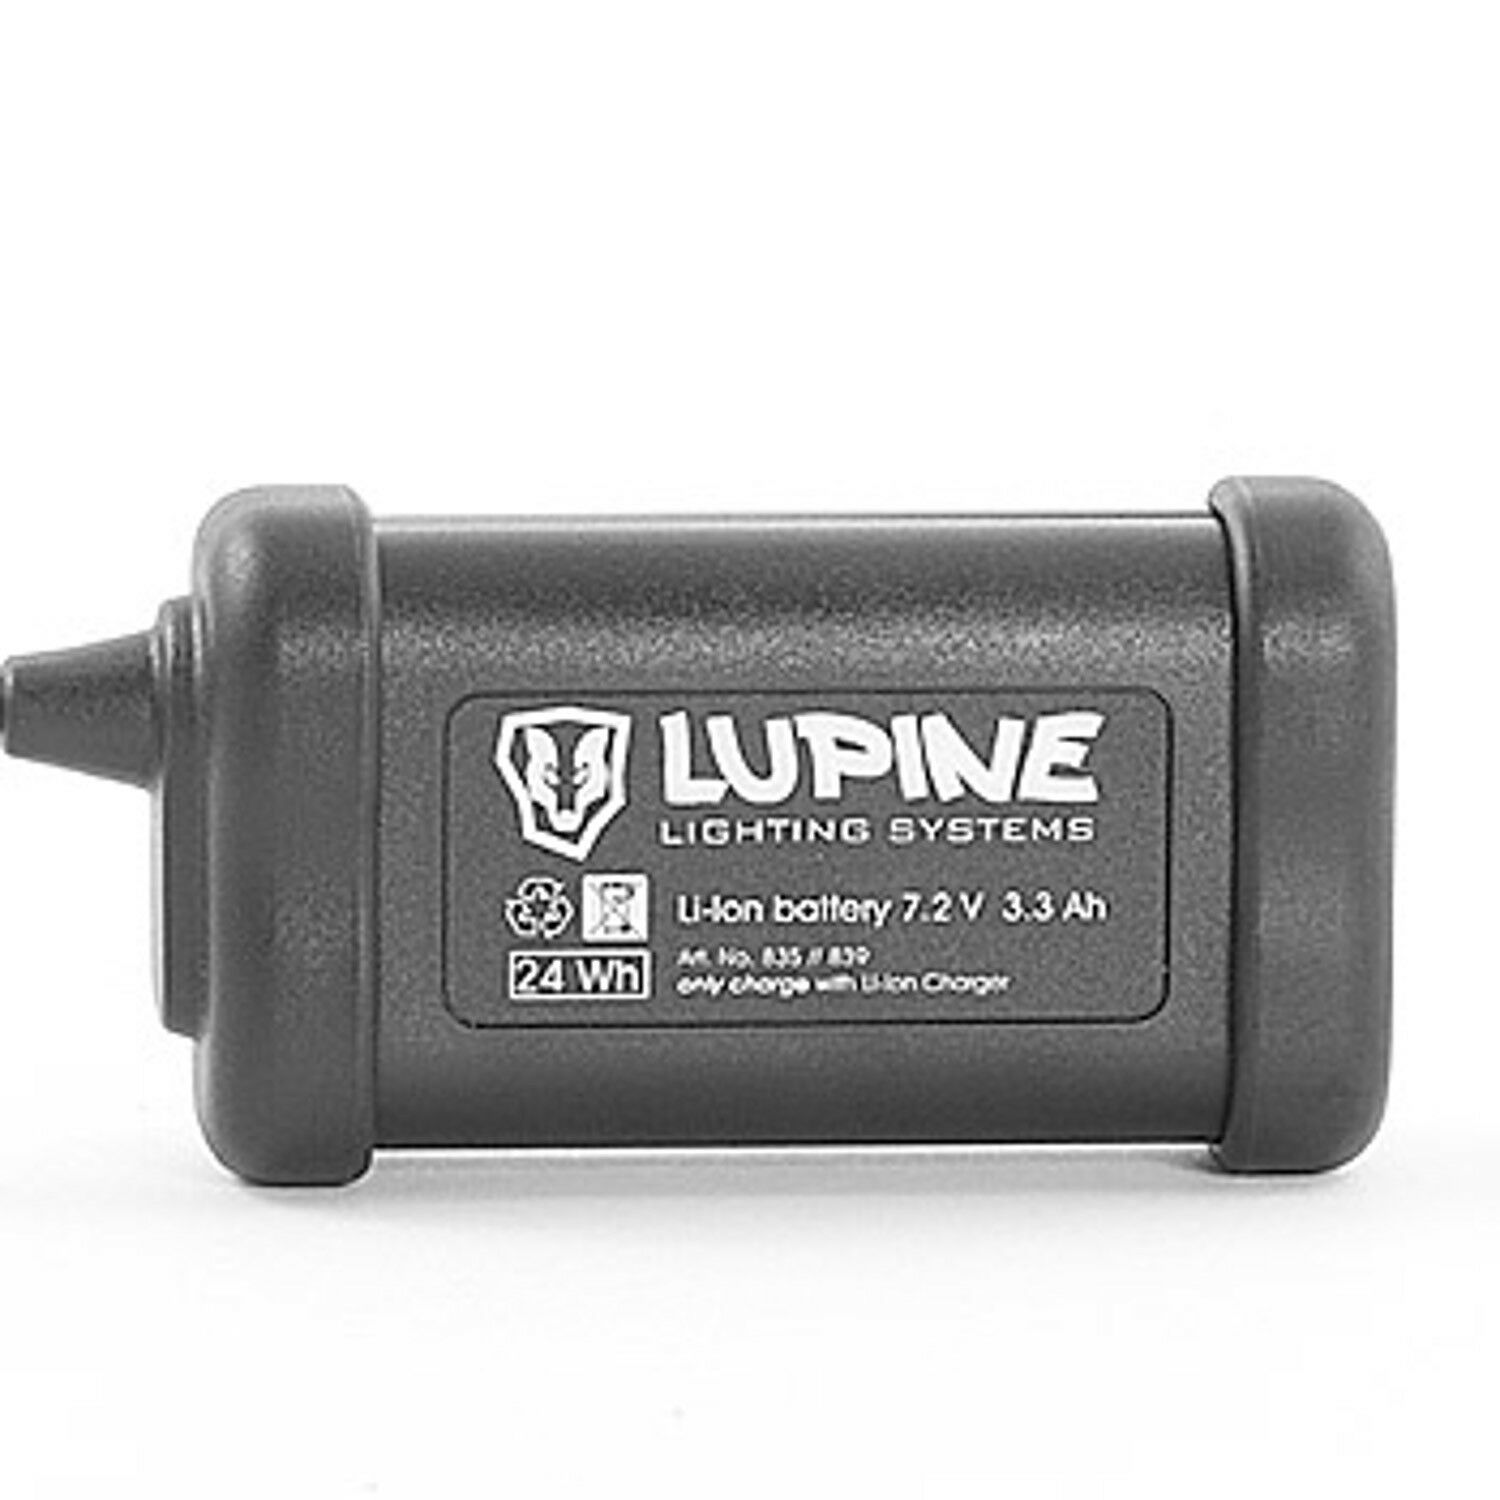 Lupine Lighting Systems 3.3 Ah HardCase Battery